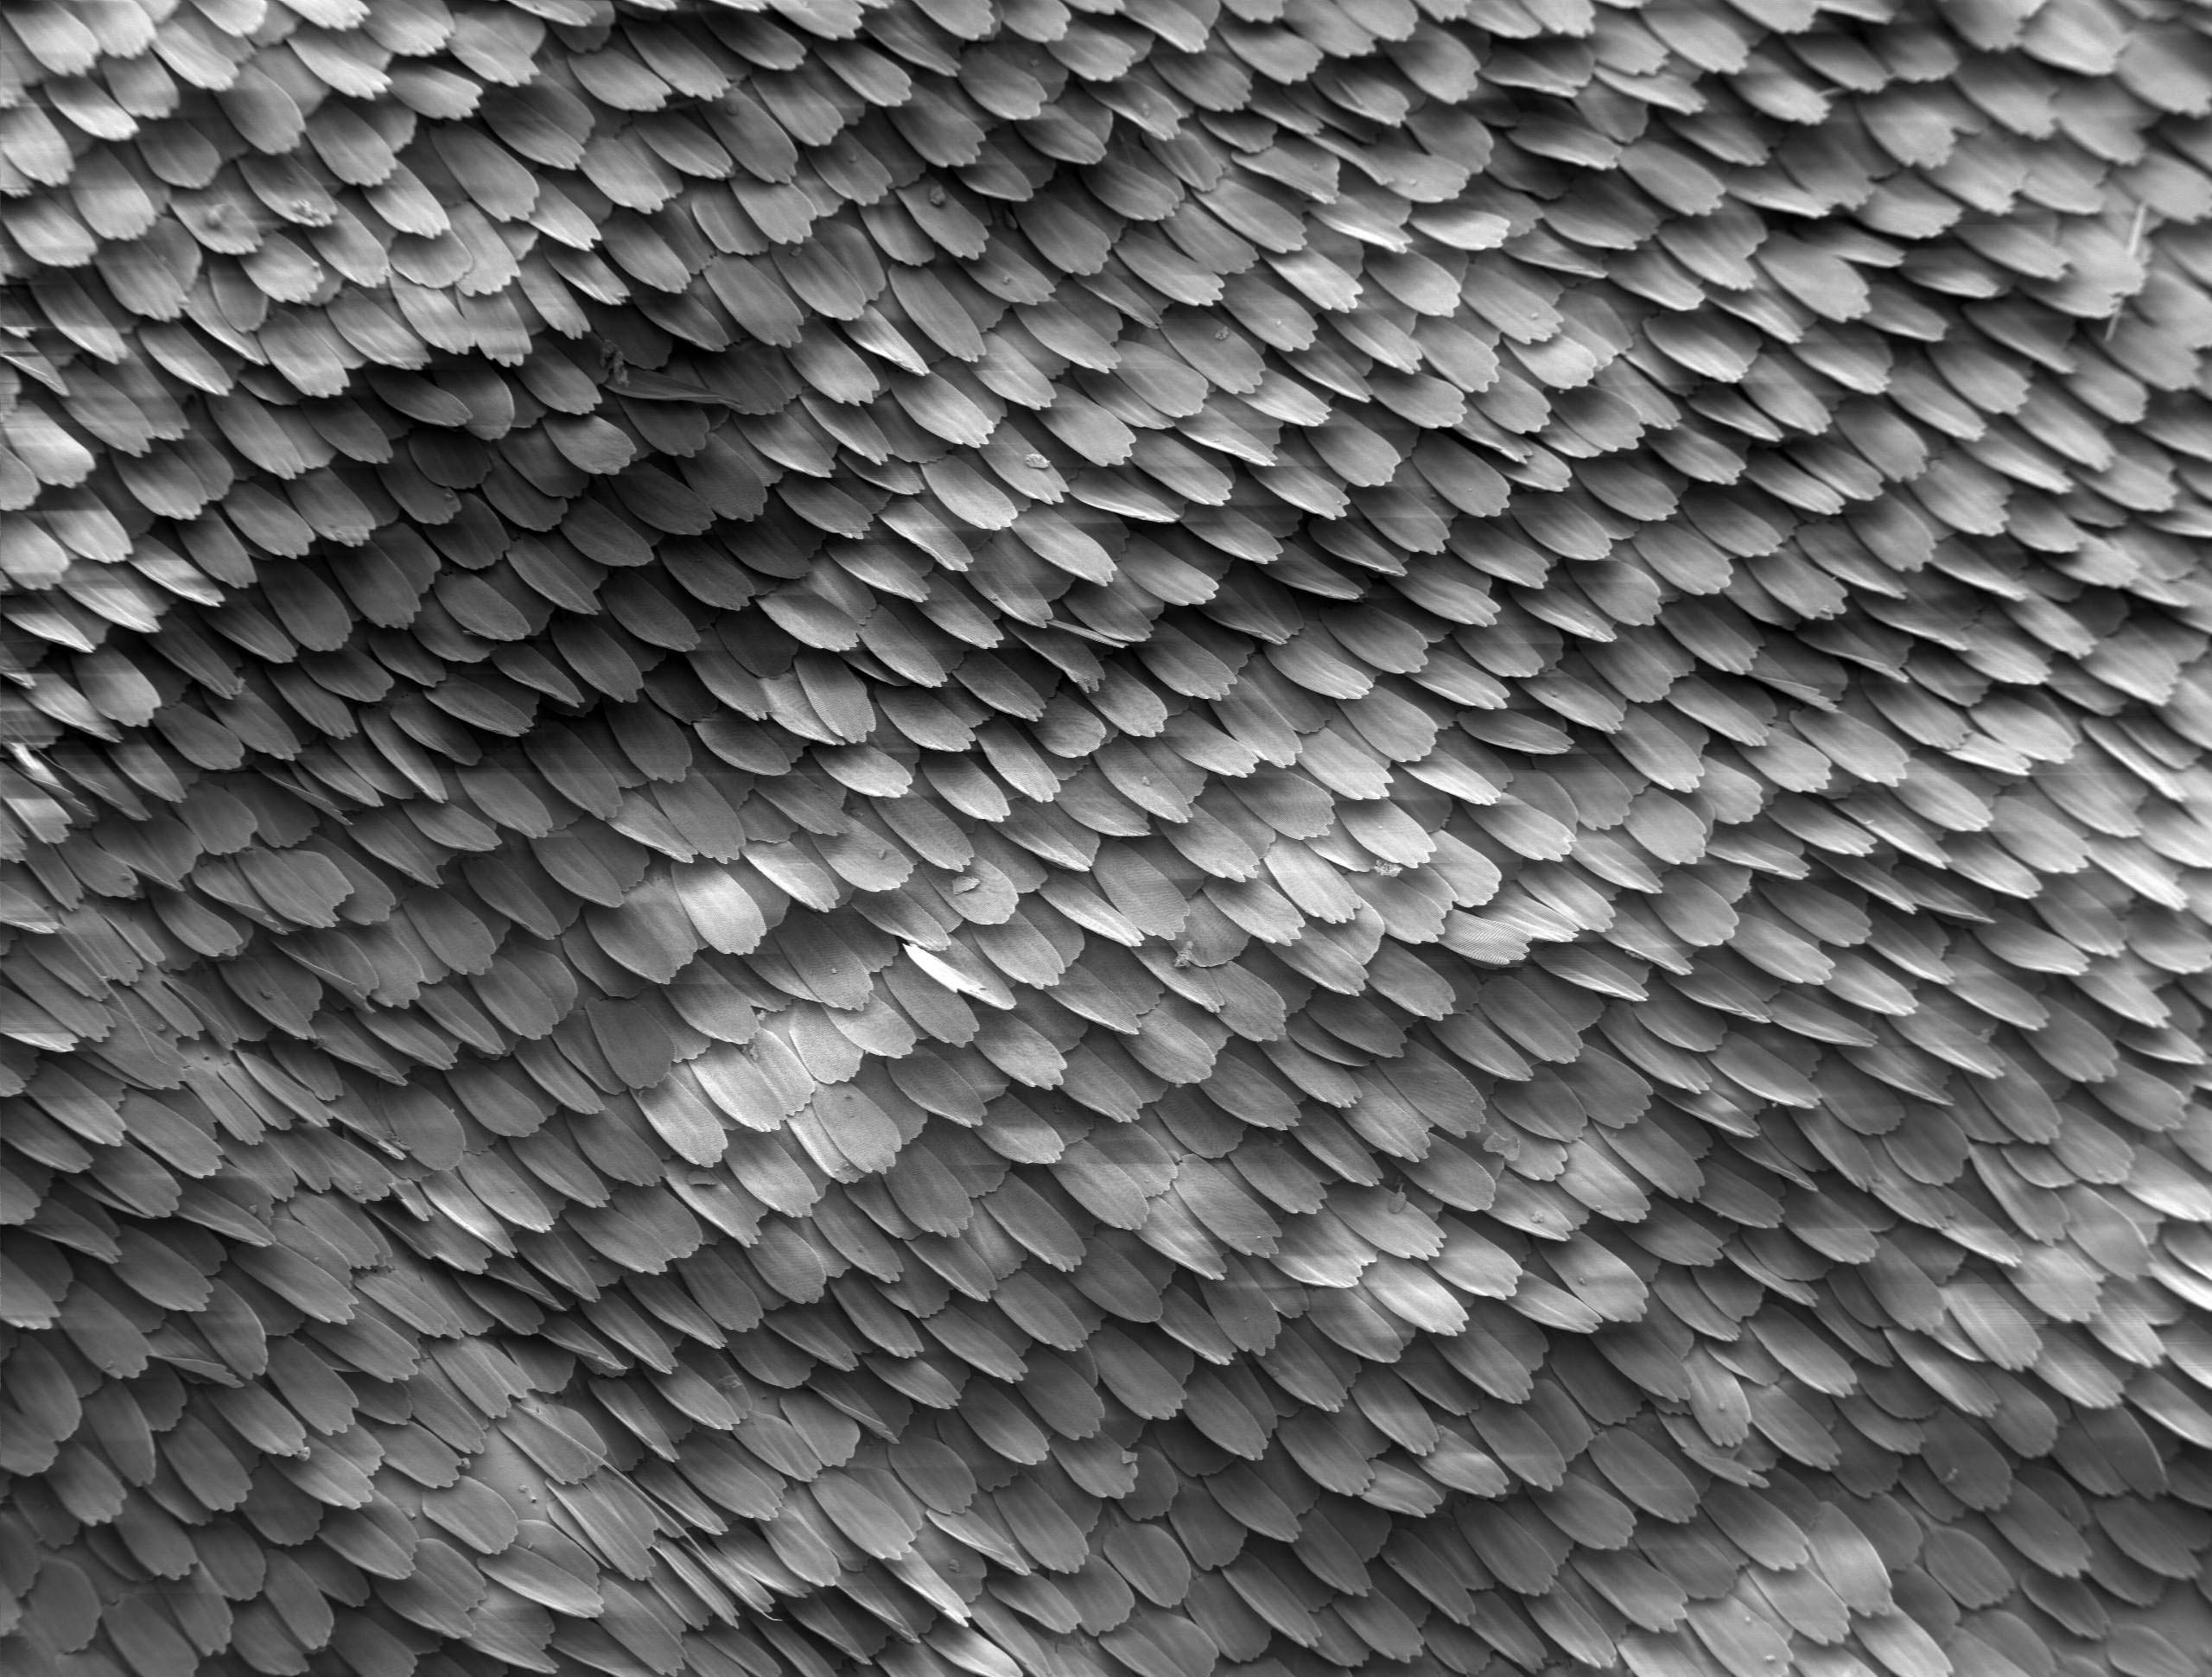 microscopic detail of Butterfly Wing